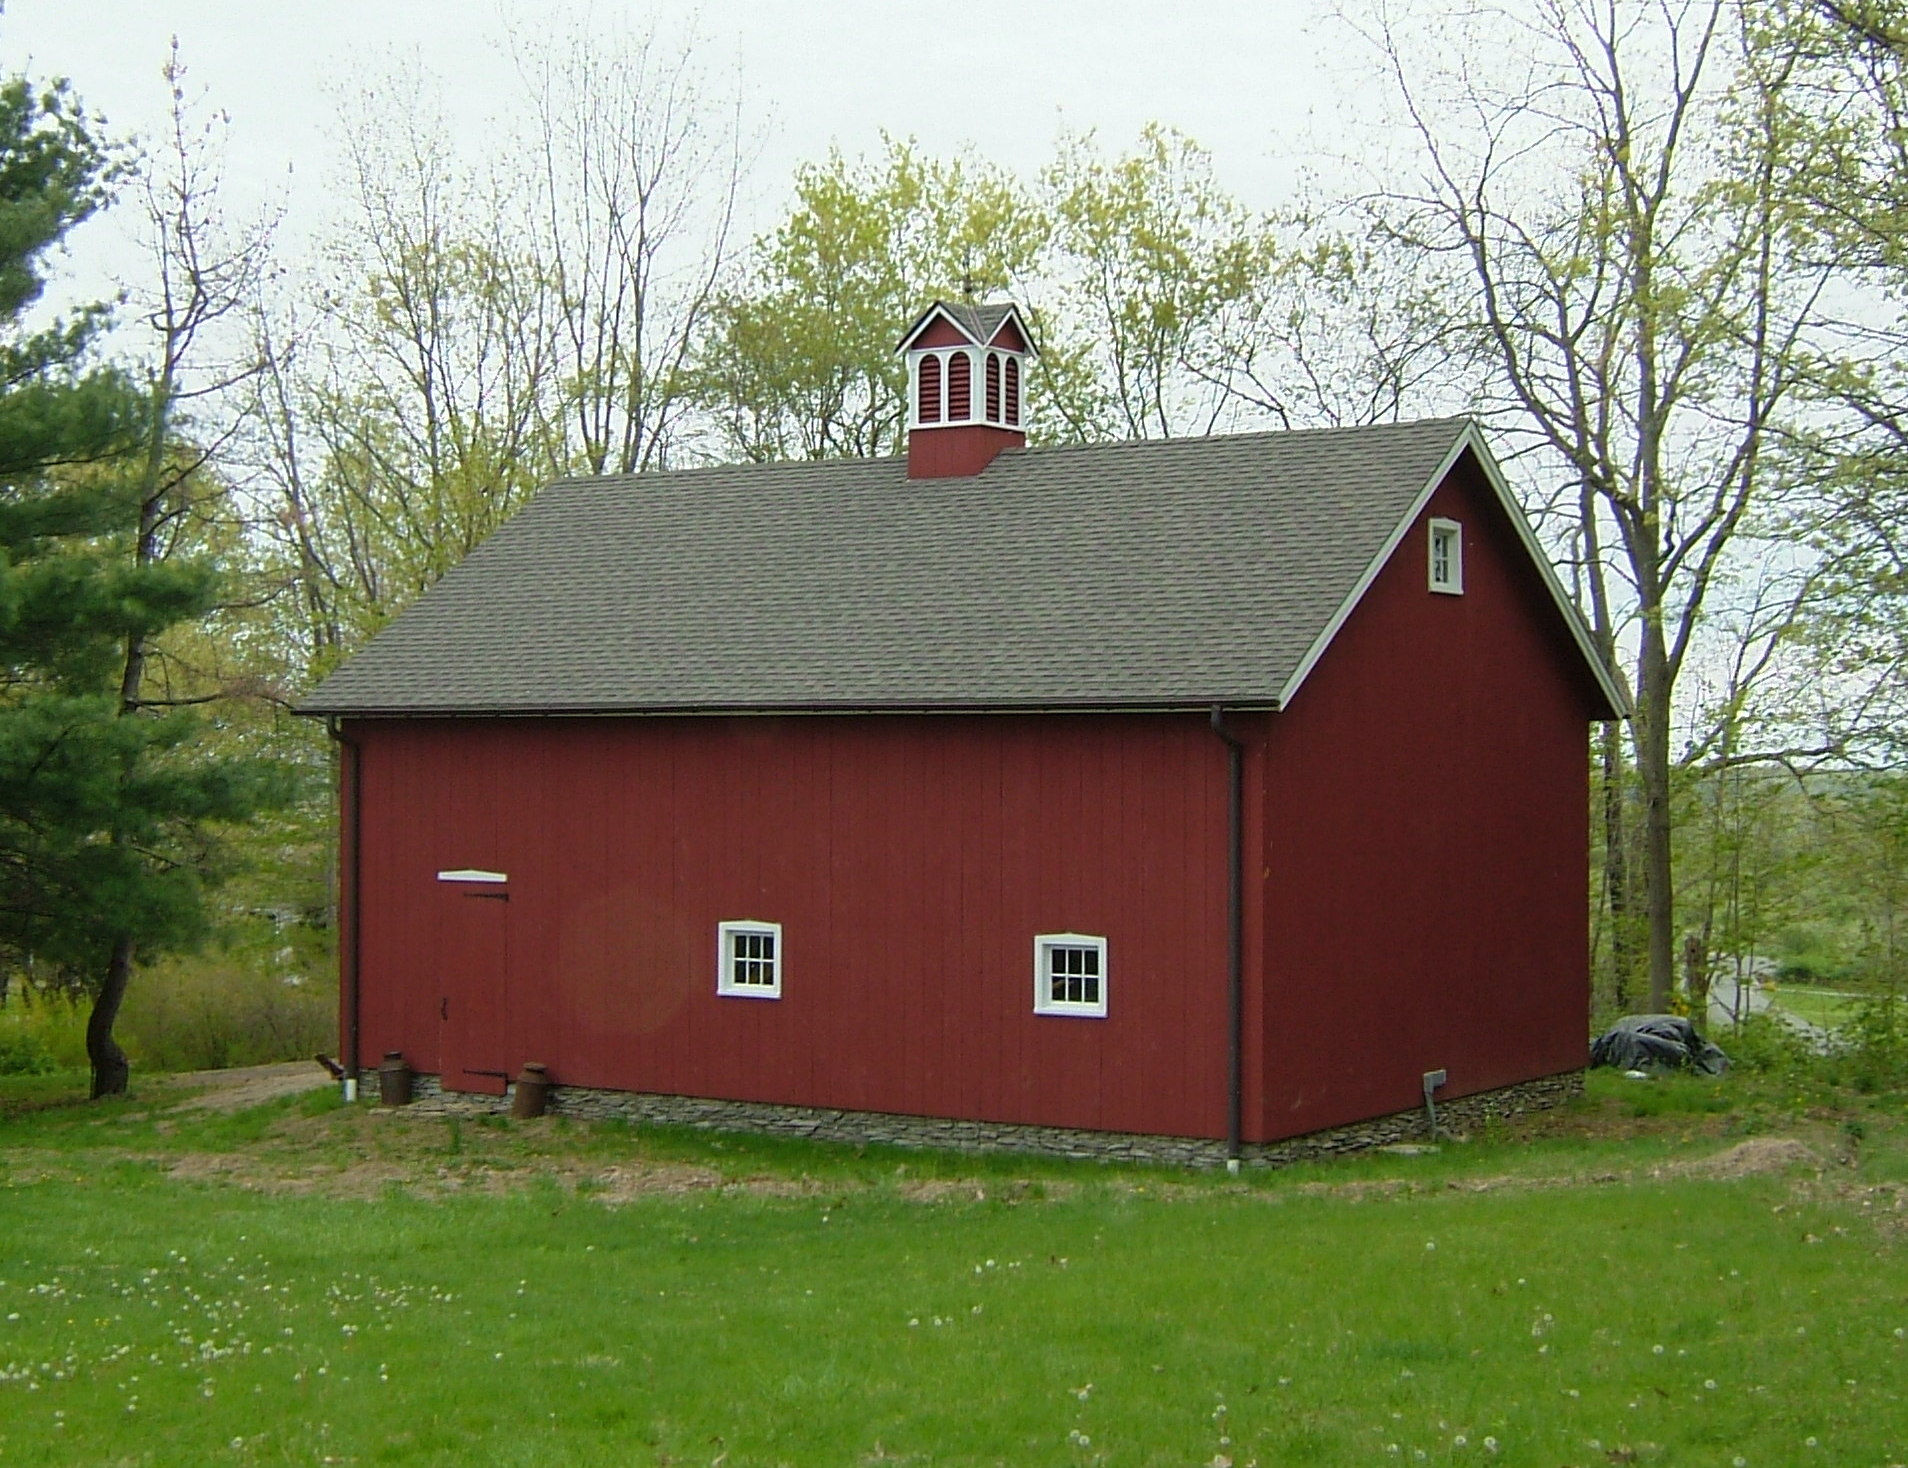 New England Barn - Ridgefield Queenpost Barn